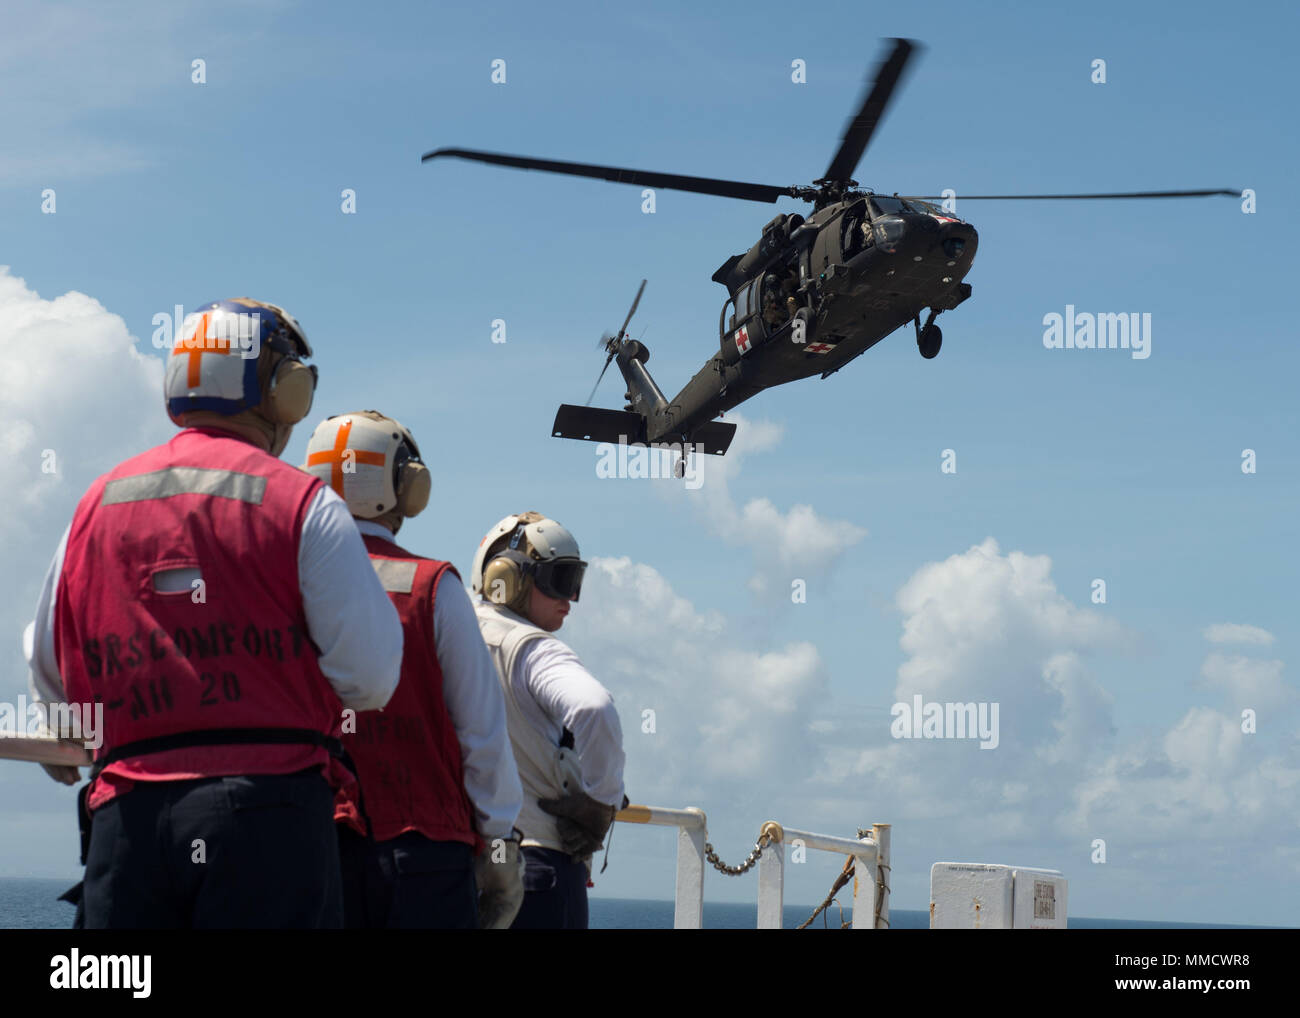 171014-N-MU198-049 CARIBBEAN SEA (Oct. 14, 2017)  A U.S. Army UH-60 Black Hawk helicopter assigned to C Co., 6th Battalion, Combat Aviation Brigade, approached the flight deck of the Military Sealift Command hospital ship USNS Comfort (T-AH 20) in order to complete day landing qualifications (DLQ). Comfort is operating in the vicinity of San Juan, Puerto Rico, to provide medical services with additional visits being planned around the island. The U.S. Health and Human Services and Puerto Rico Department of Health representatives are prioritizing patients at each stop prior to Comfort's arrival Stock Photo